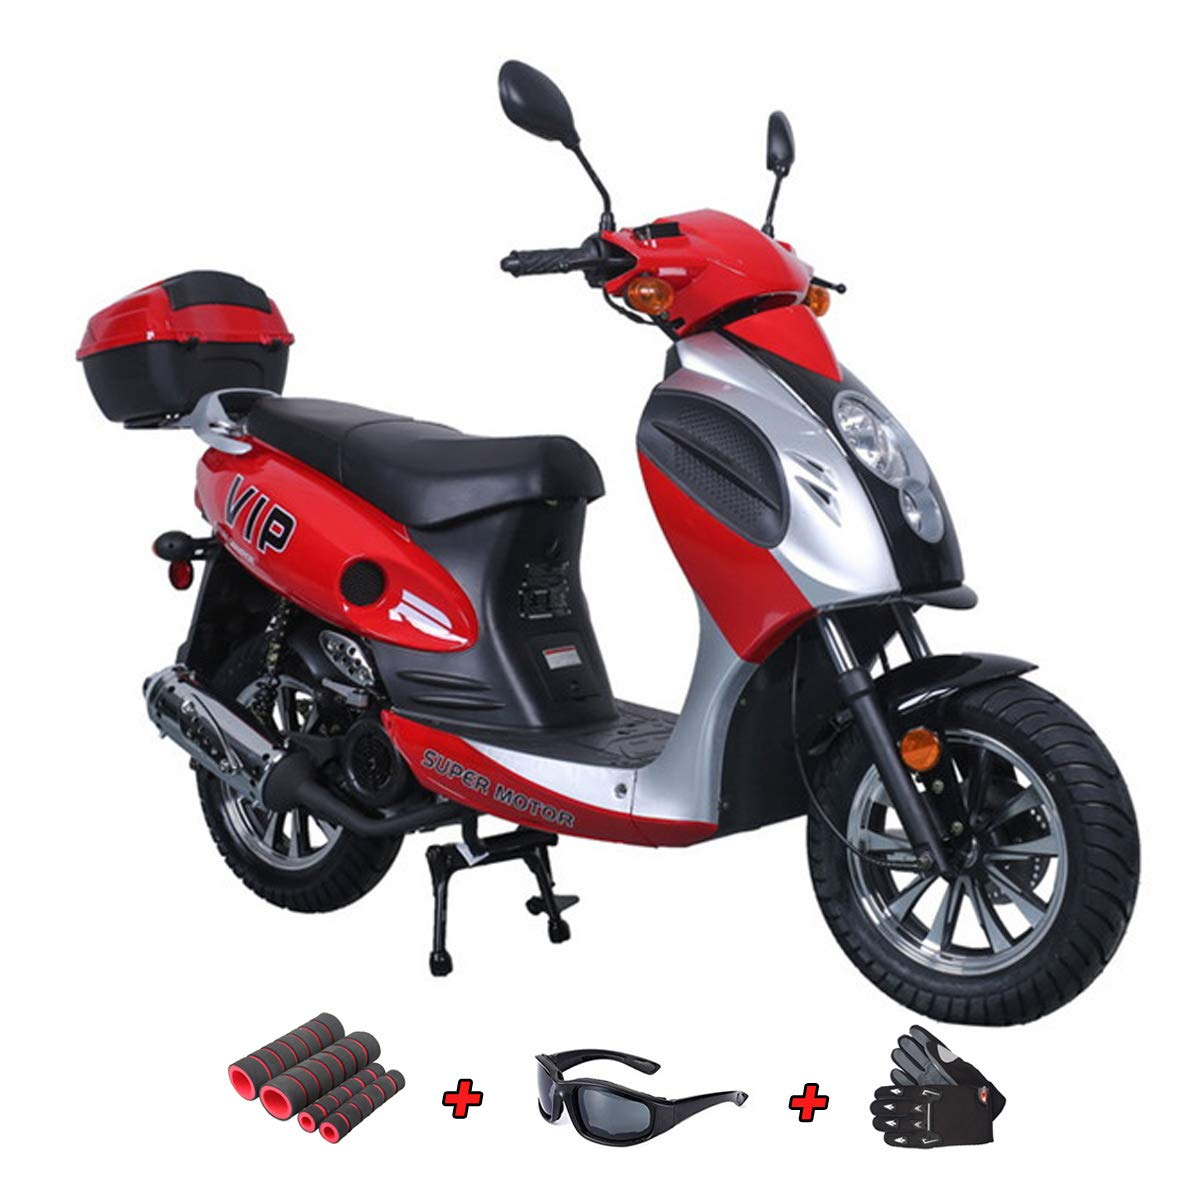 150cc Moped Scooter Motorcycle Scooter 150 Adult Scooter Gas Moped Scooter with Gloves, Sunglasses and Handgrip (Red) by X-Pro